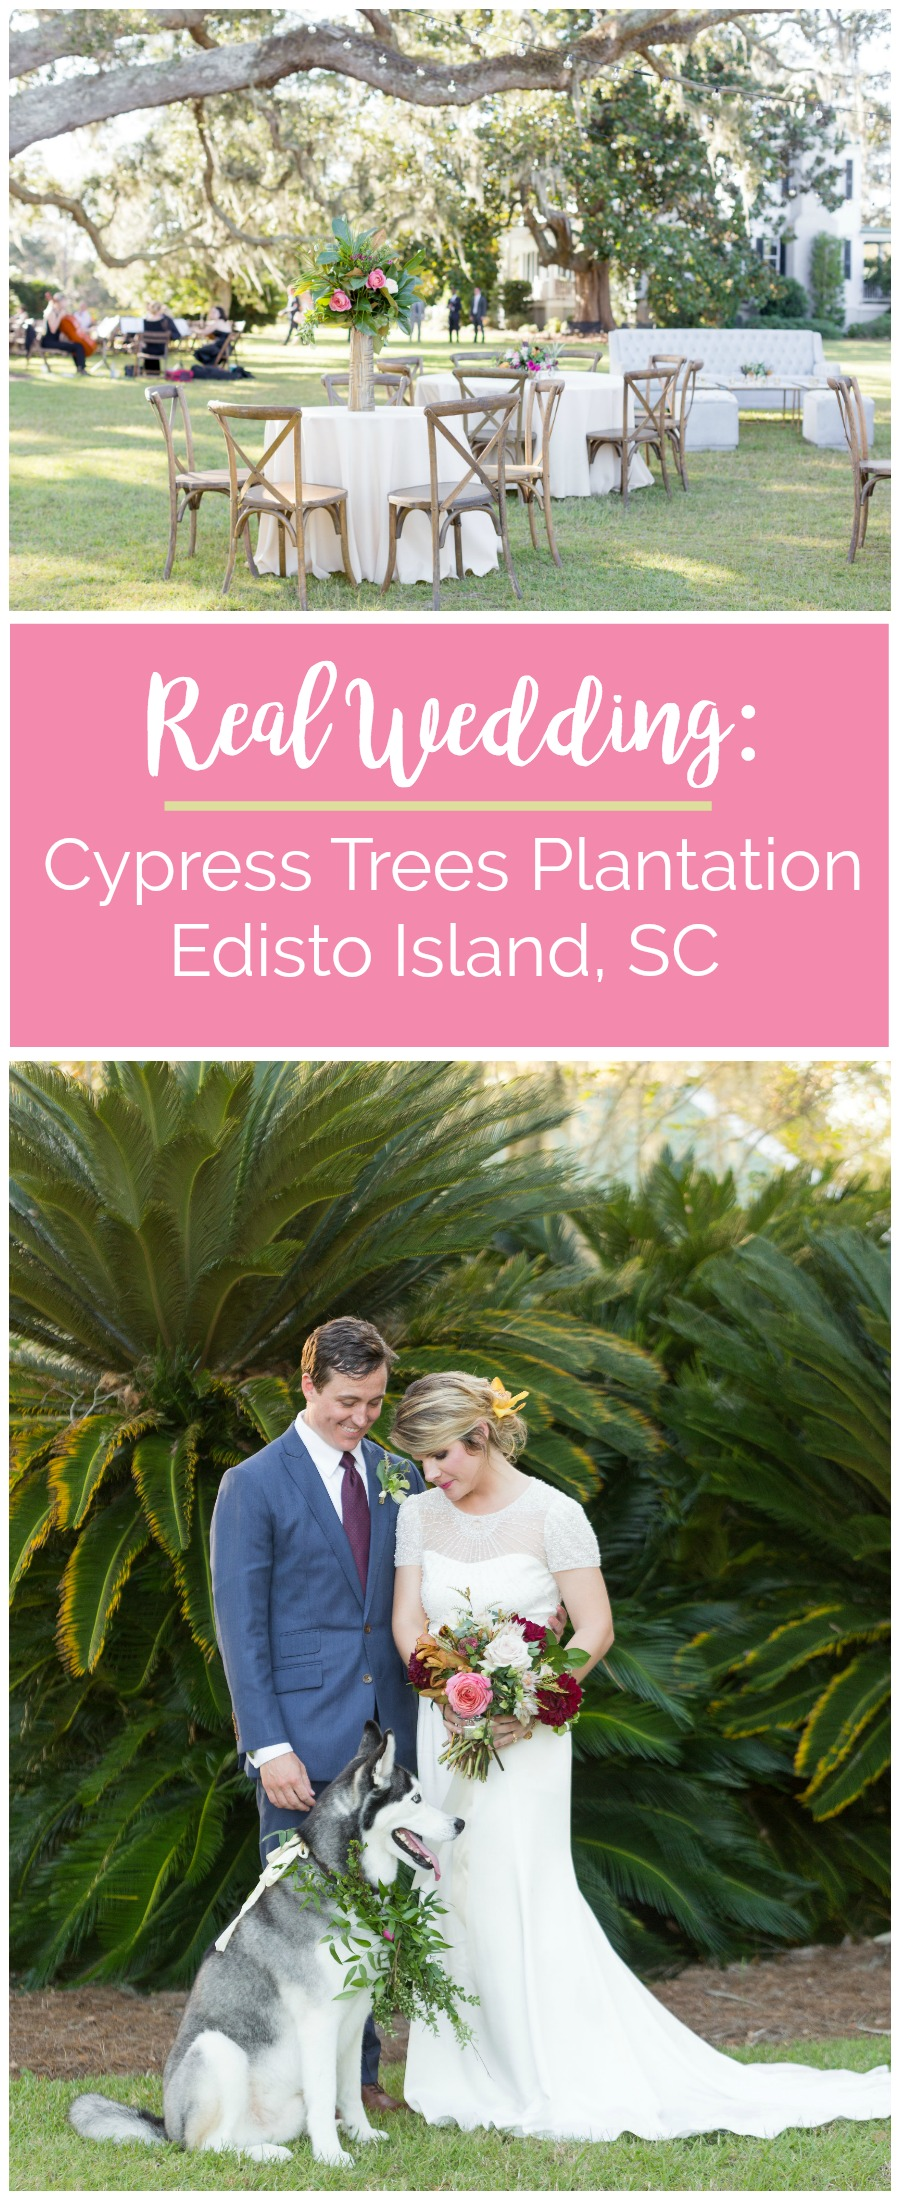 Carrie and Douglas: Dream Edisto Island Wedding at Cypress Trees Plantation | Palmetto State Weddings